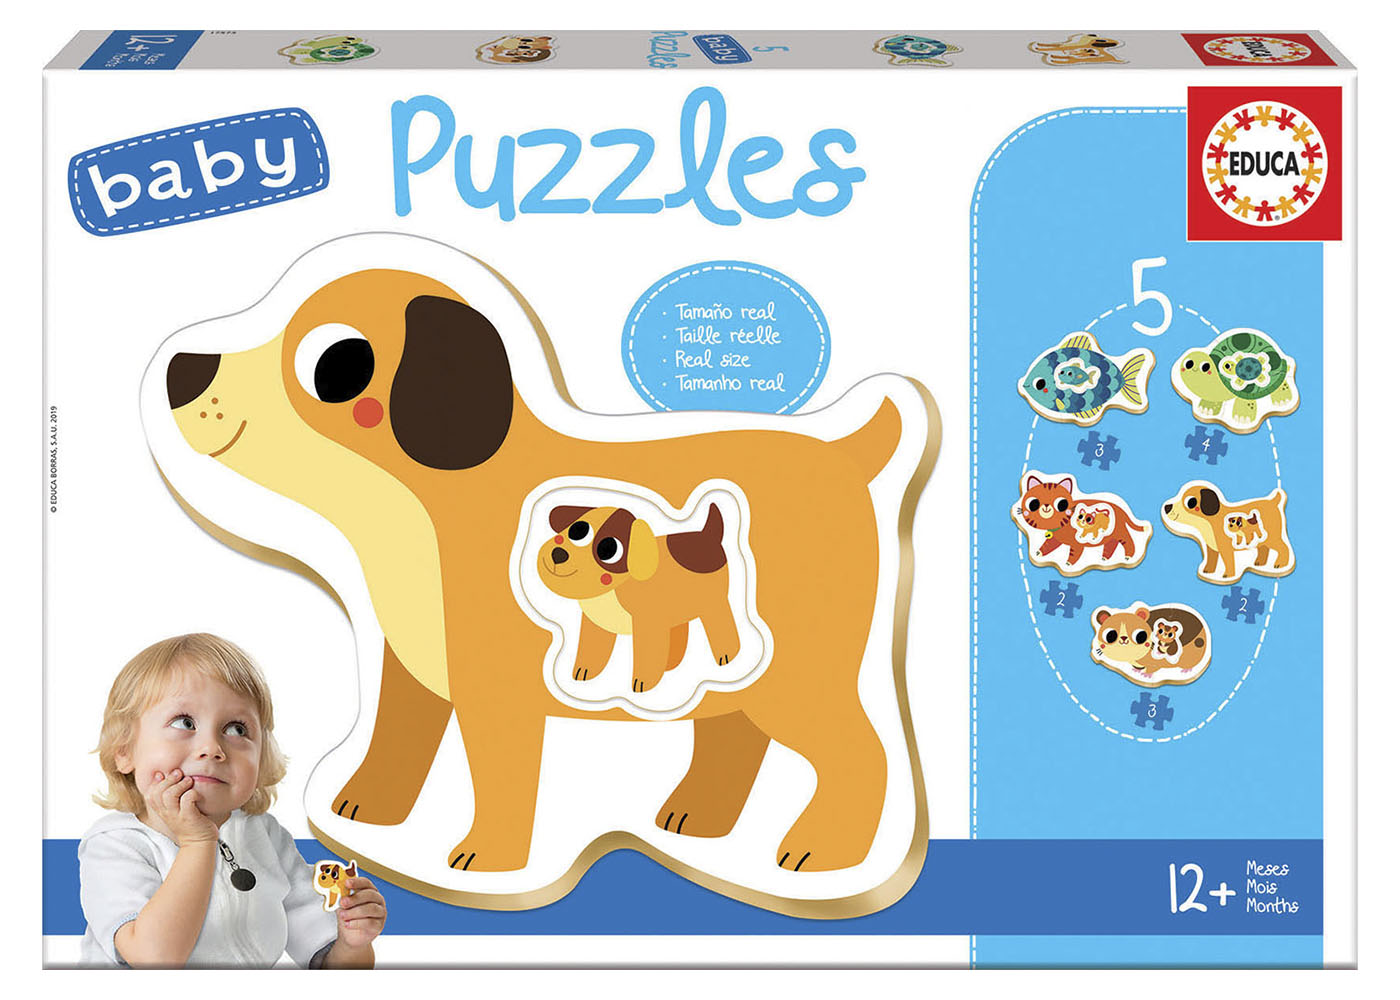 5 Baby Puzzles - Small Animals